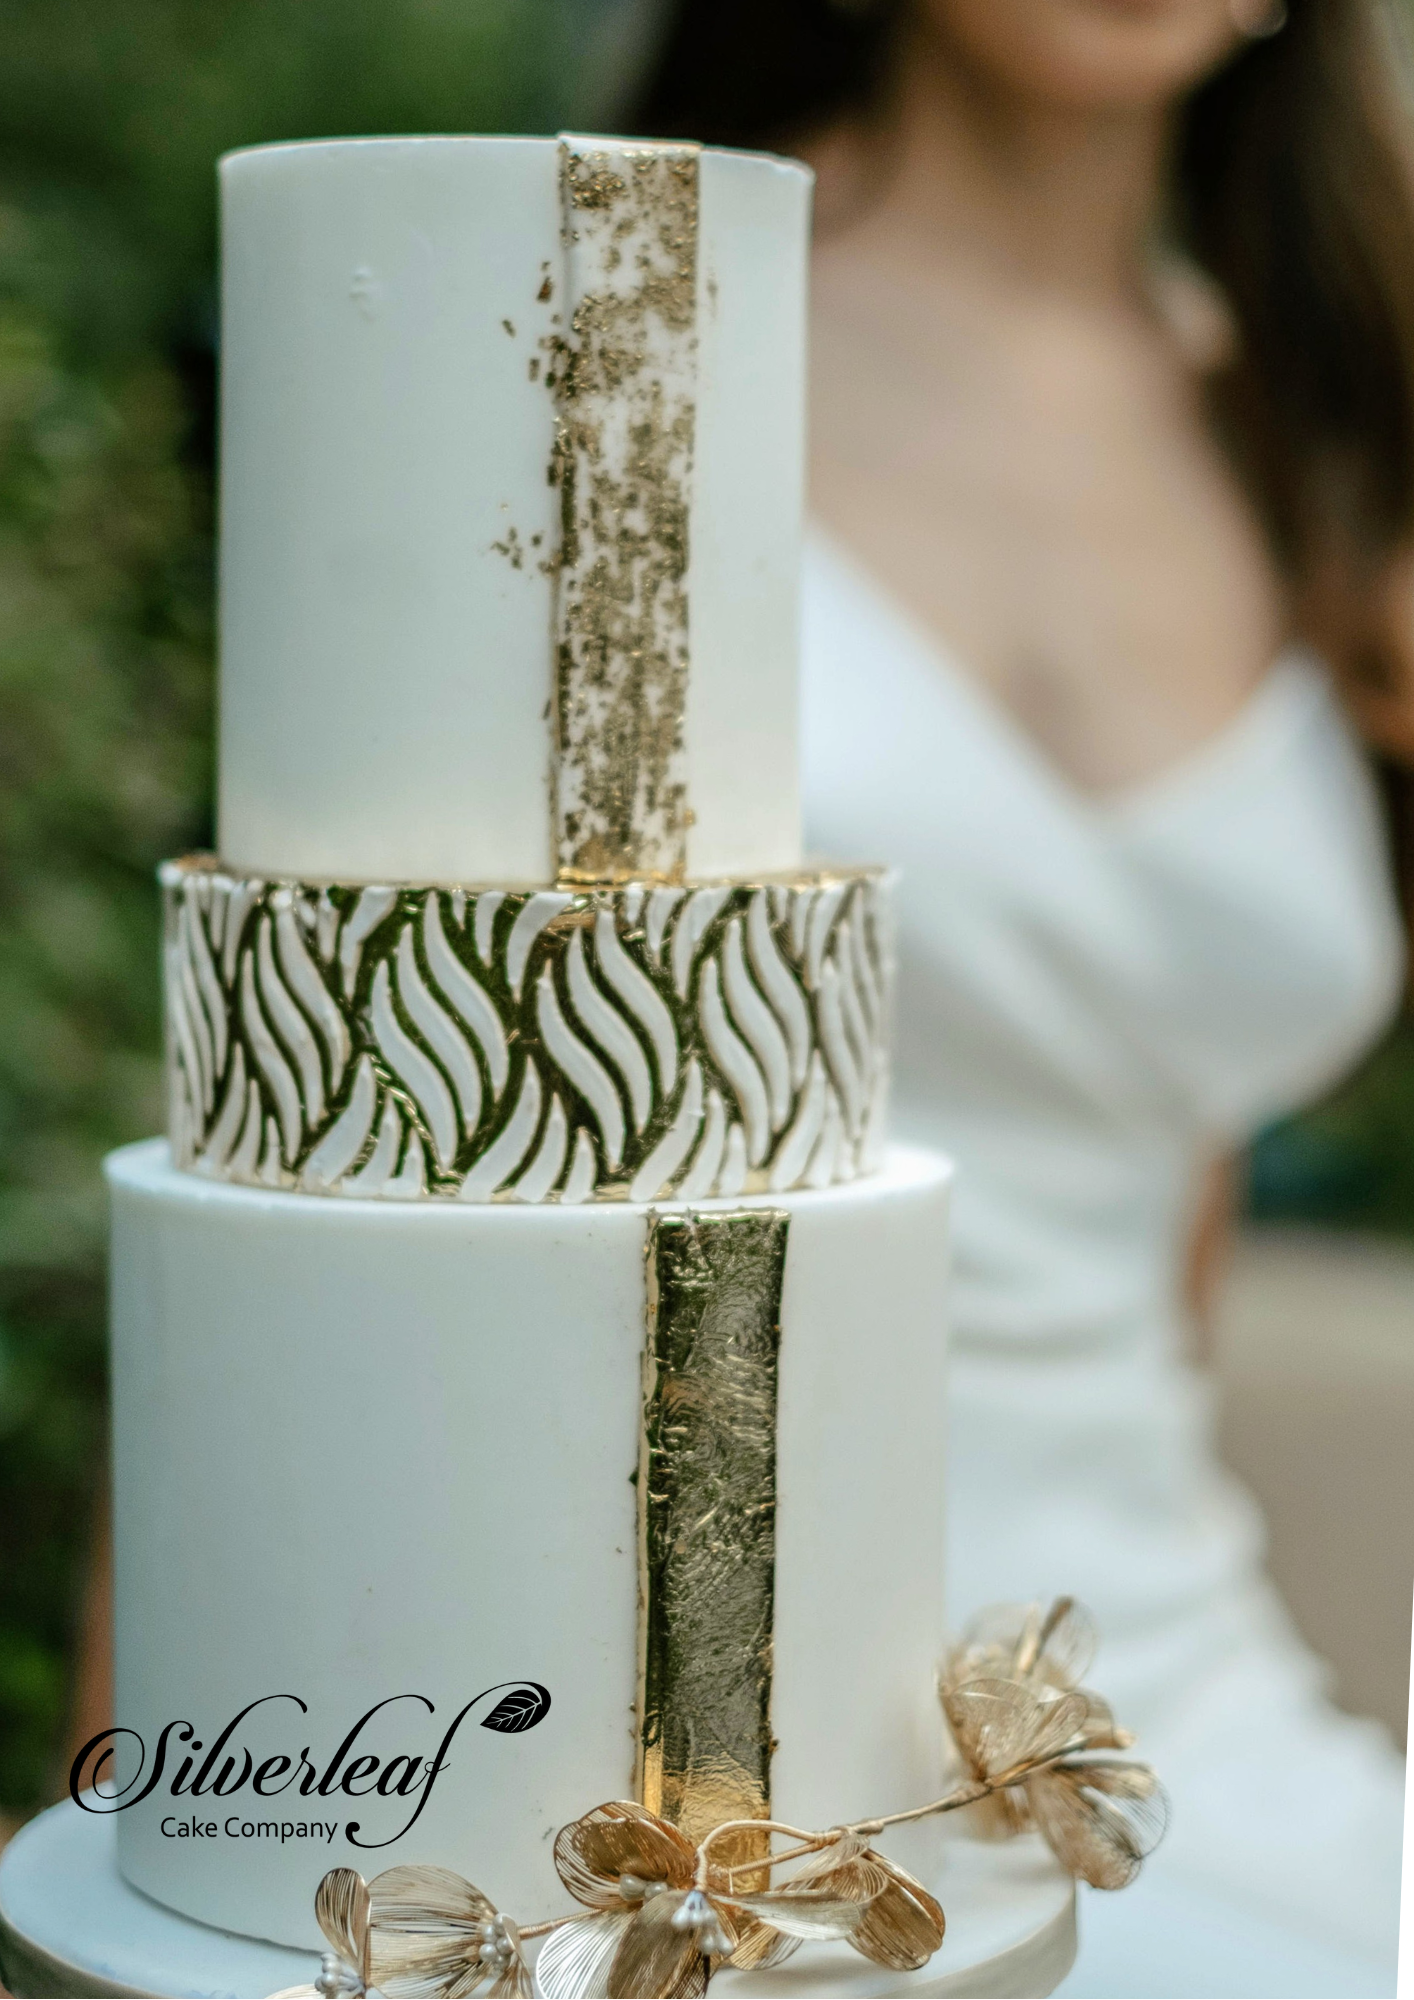 Sharp three-tier white and gold wedding cake. Top and bottom tier are white with a brioad raised gold line detail and middle tier is golf leaf with modern stencil detailing in white. Very simple, elegant and quietly outspoken